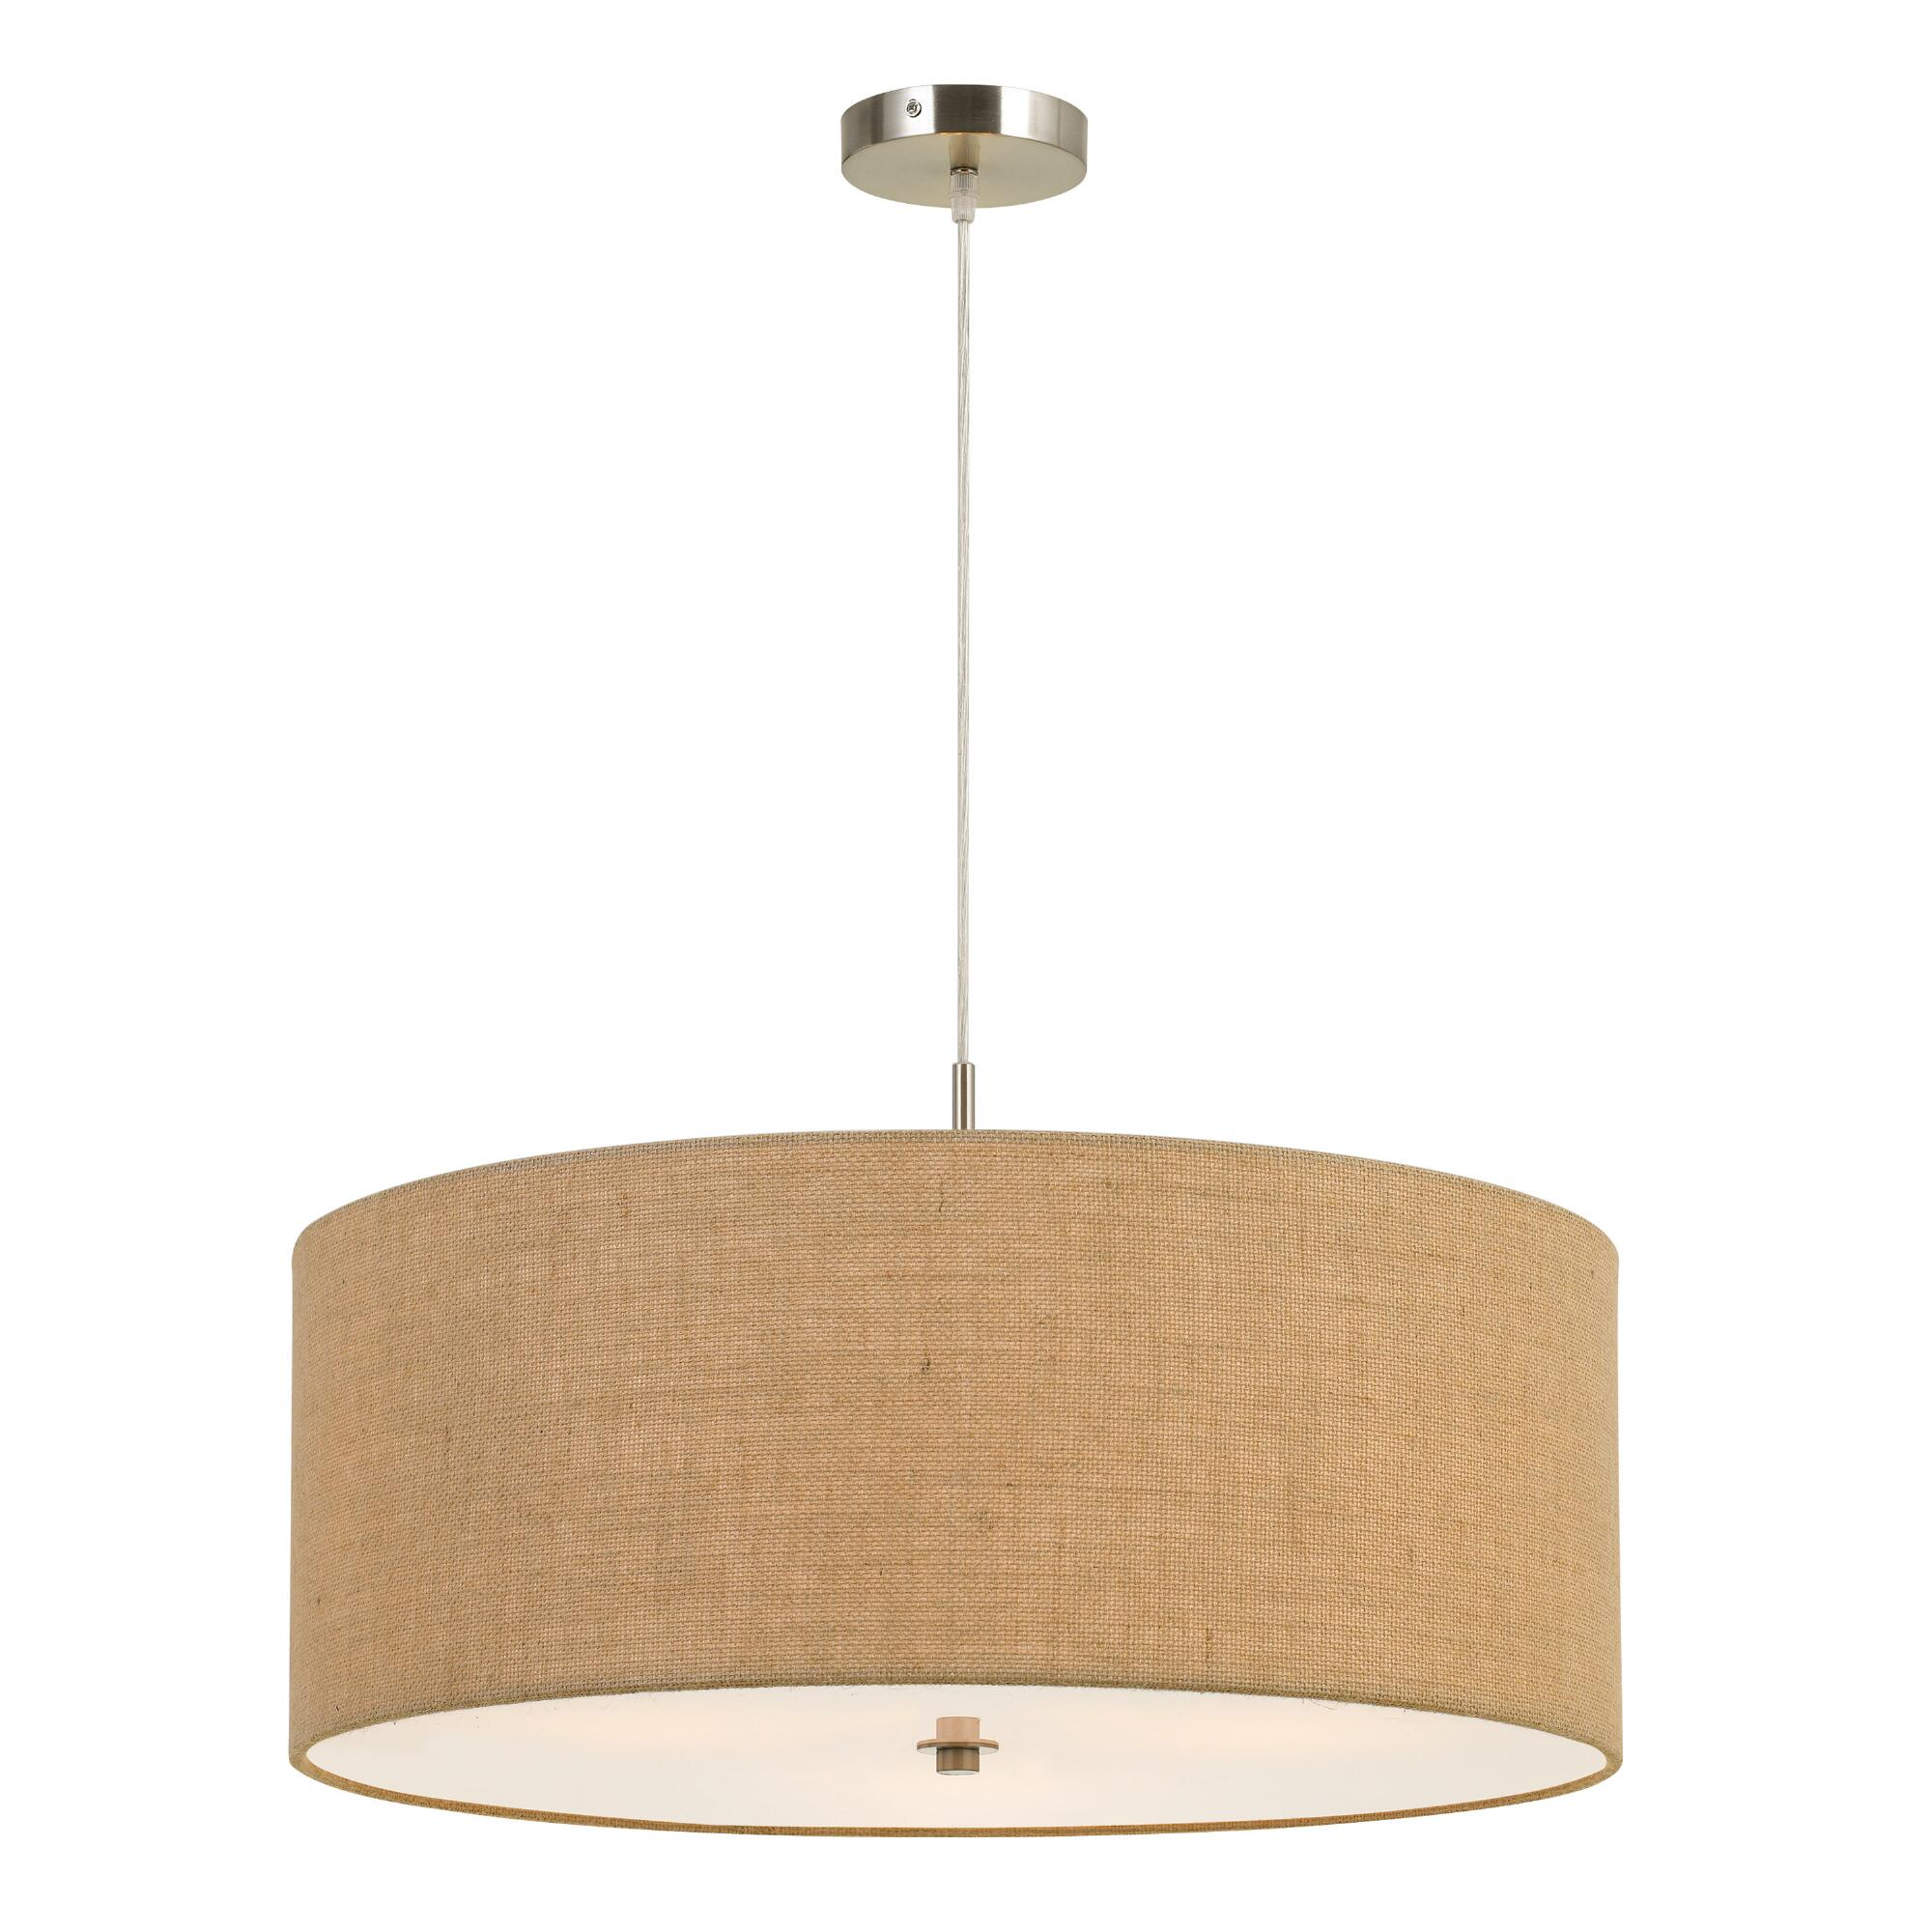 Large Natural Burlap Drum 3 Light Billie Pendant Lamp by World Market